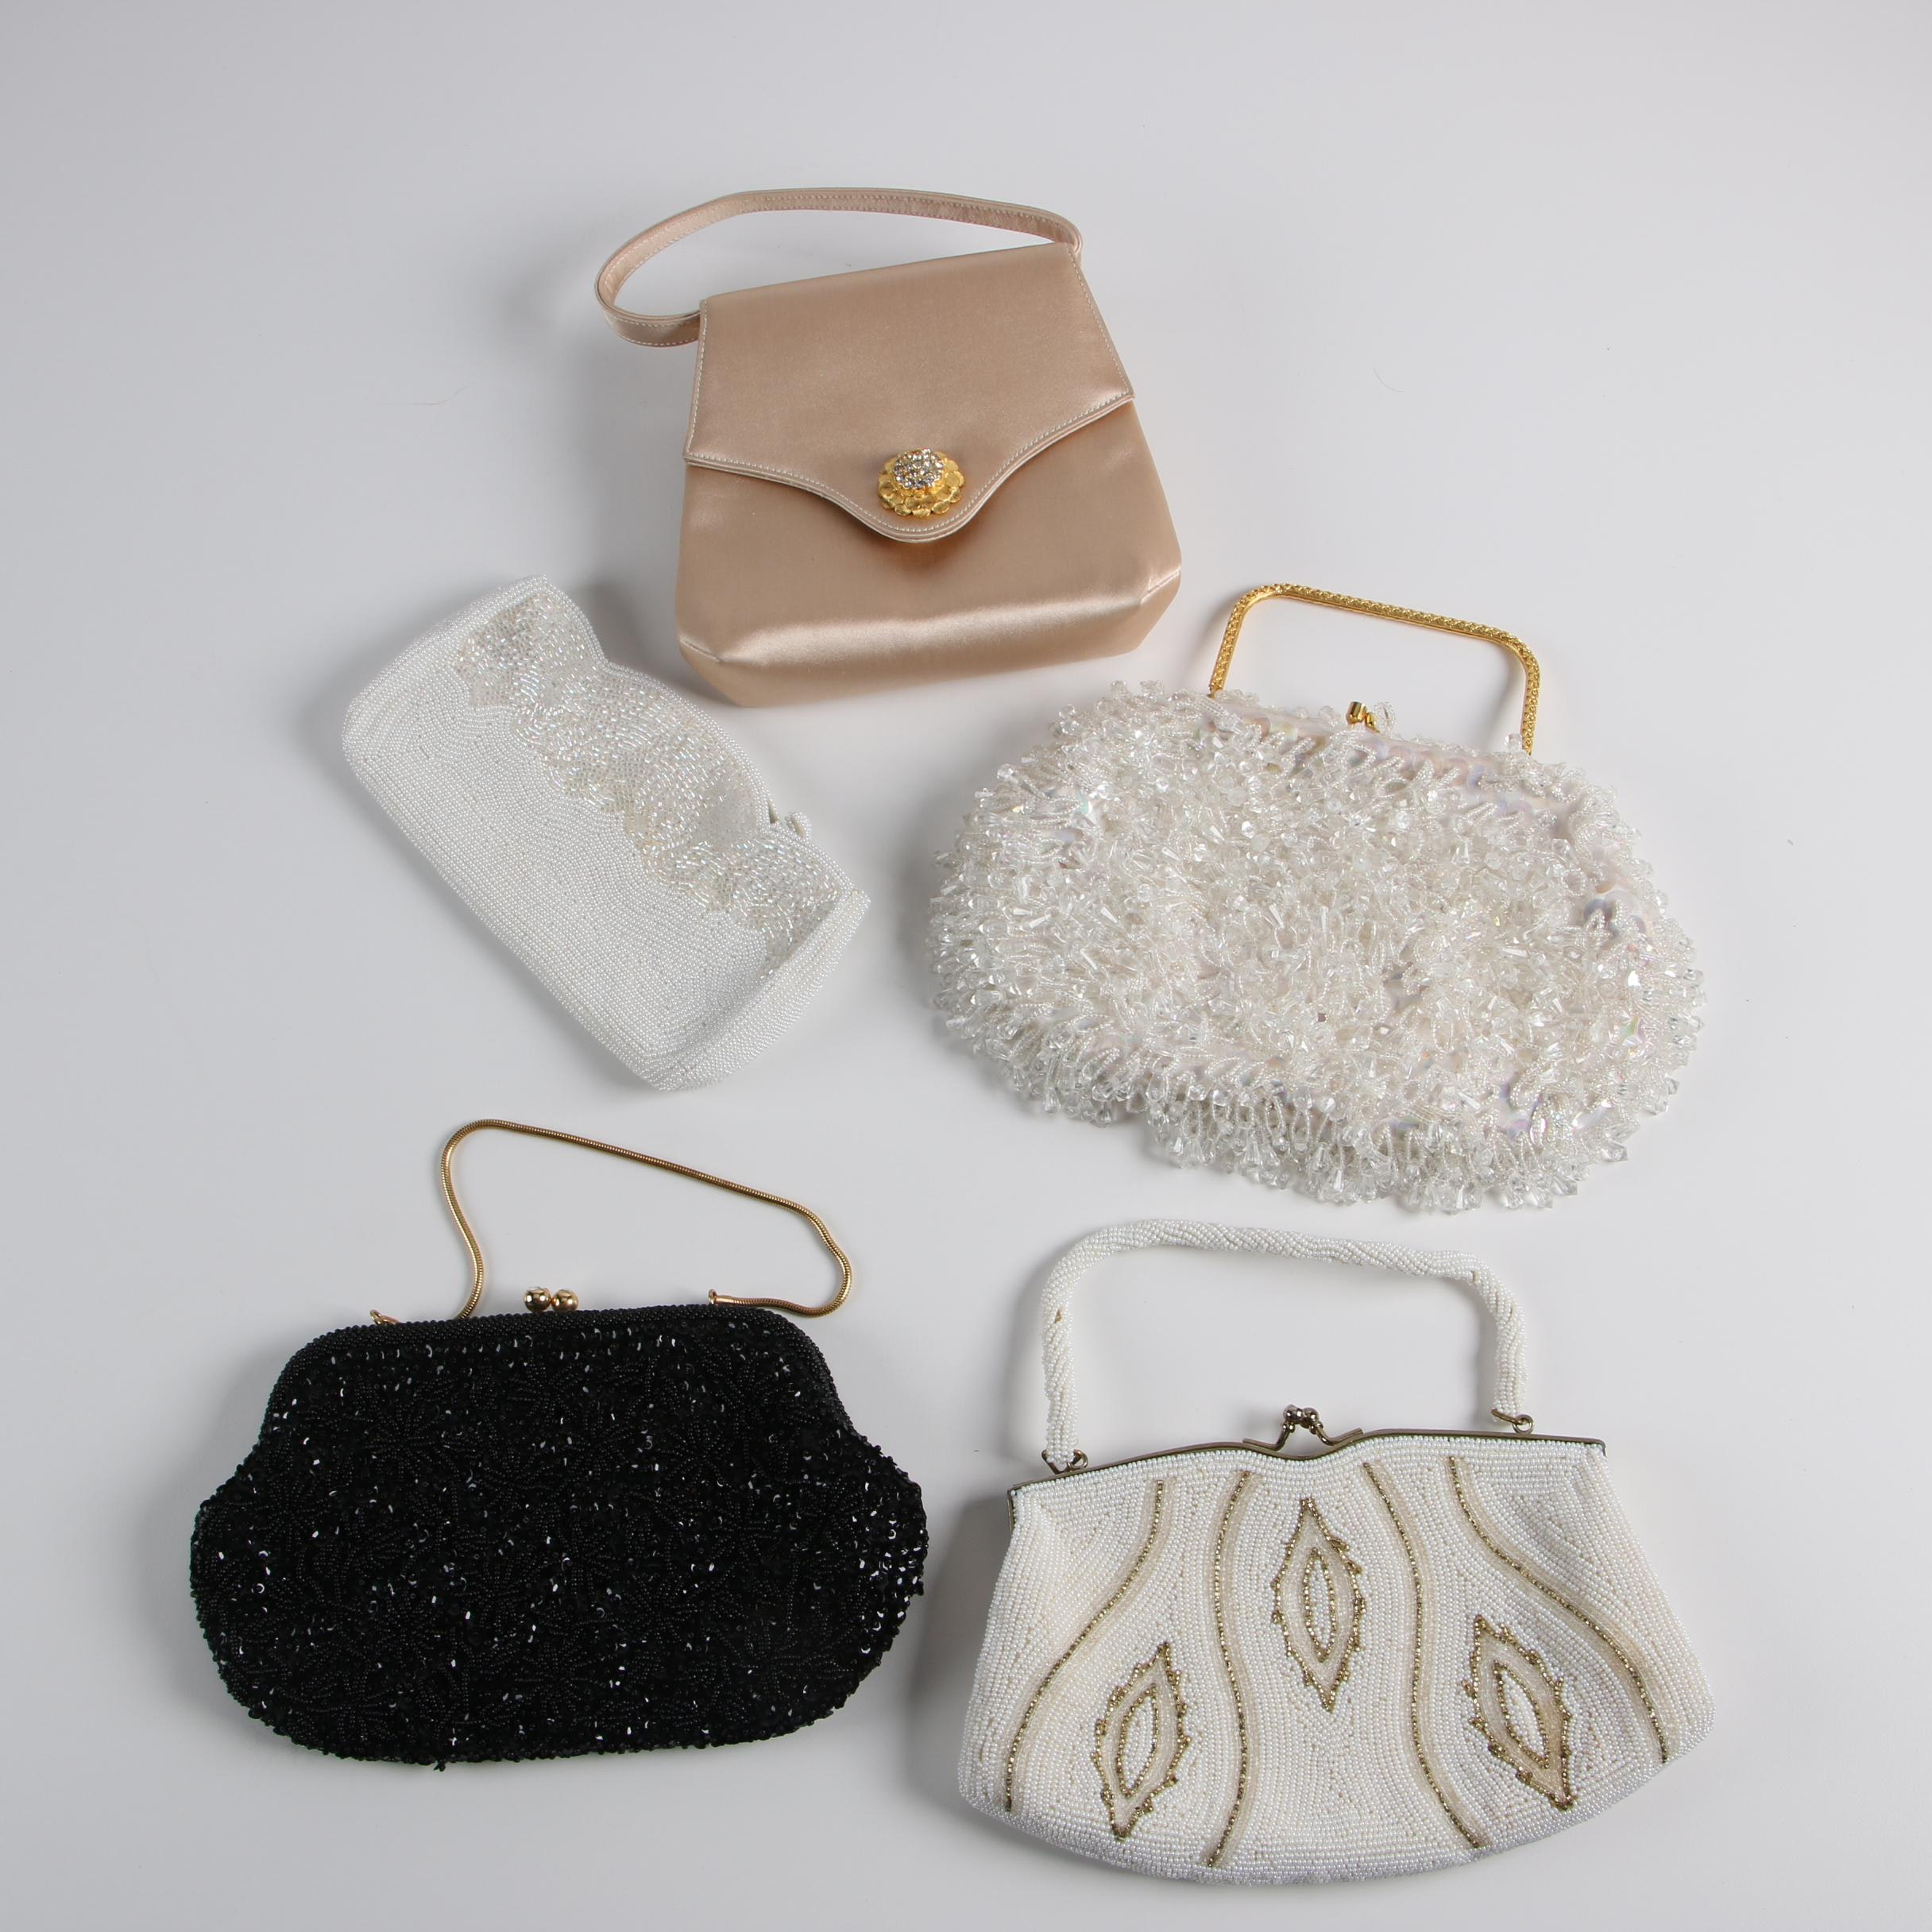 Vintage Beaded Clutches and Morris Moskowitz Evening Bag